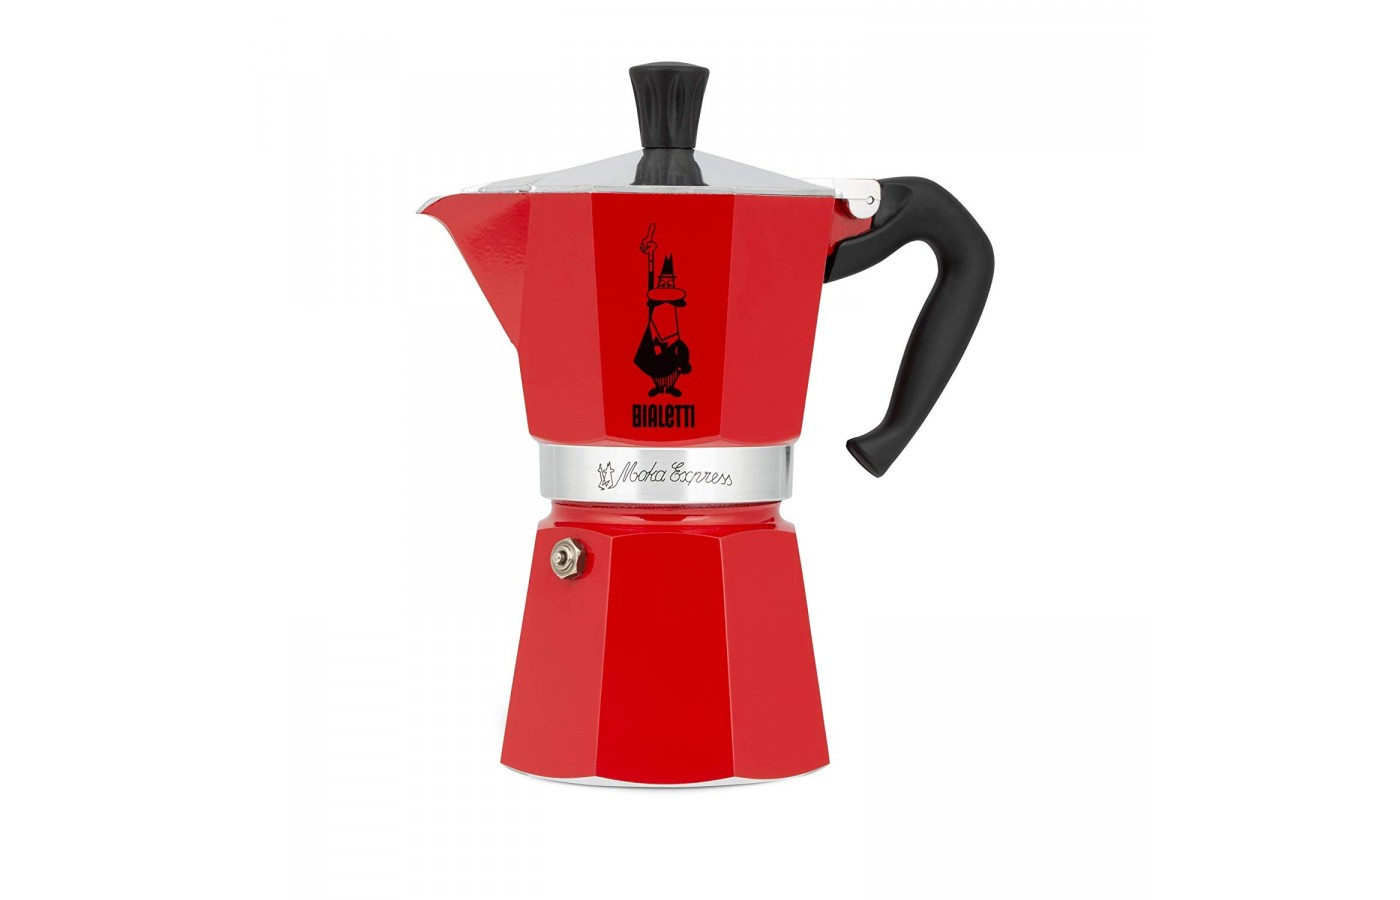 The Bialetti Moka Express makes 3 2-ounce cups for easier serving.